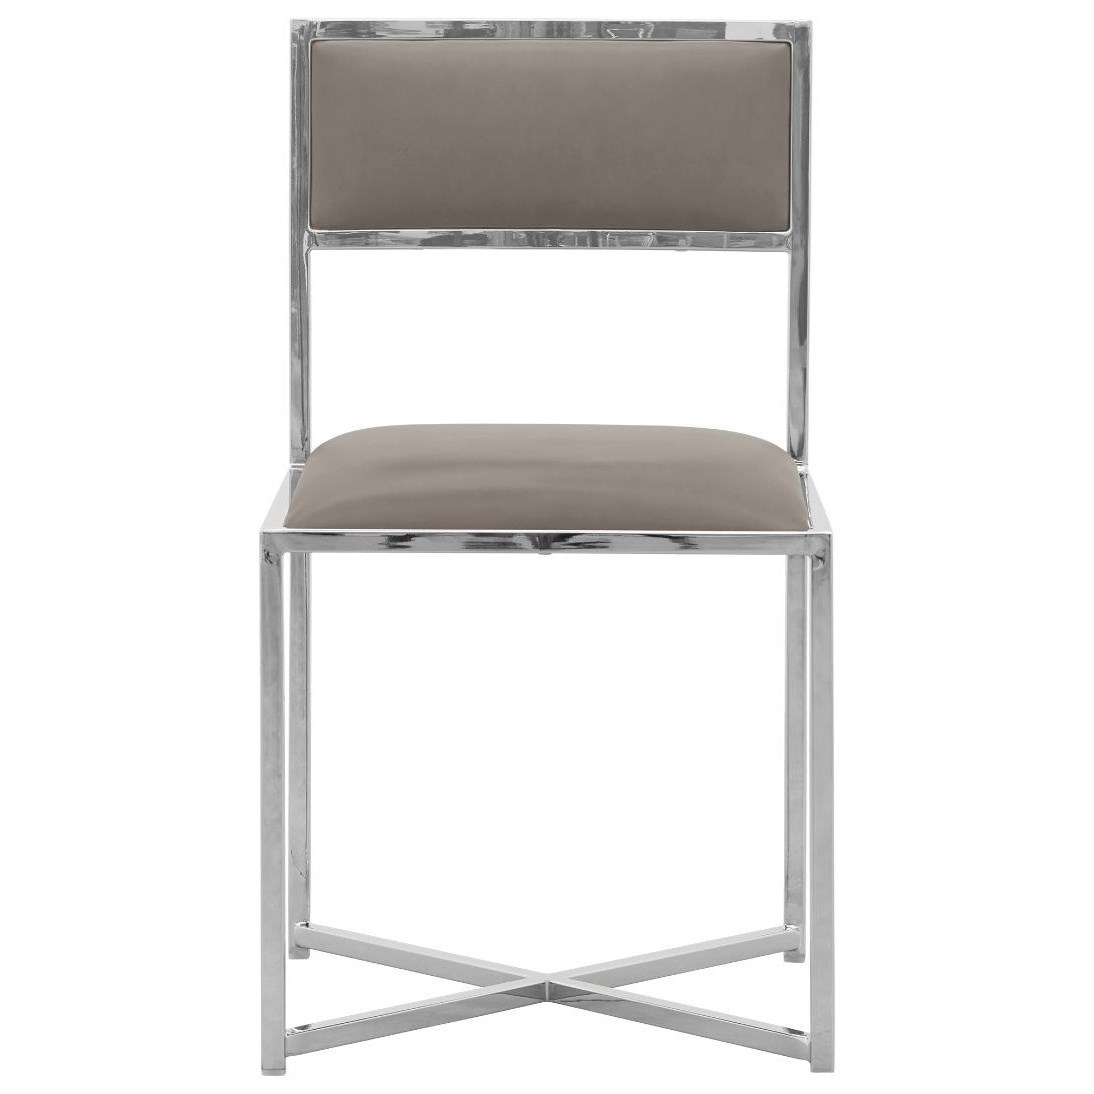 X-Base Chair in Taupe